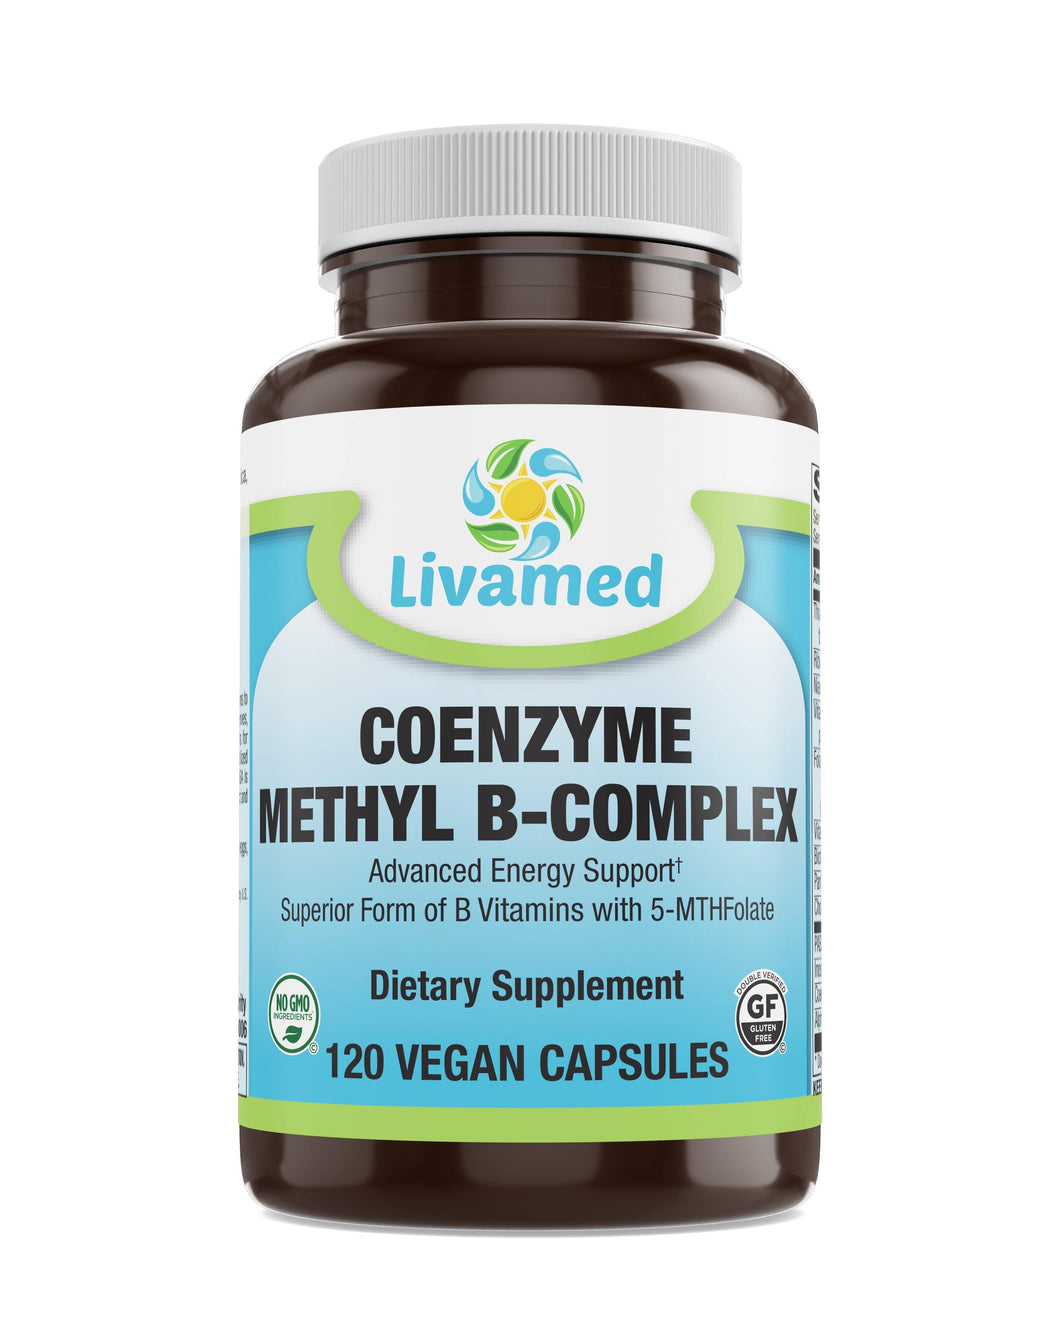 Livamed - Coenzyme Methyl B-Complex 120 Count